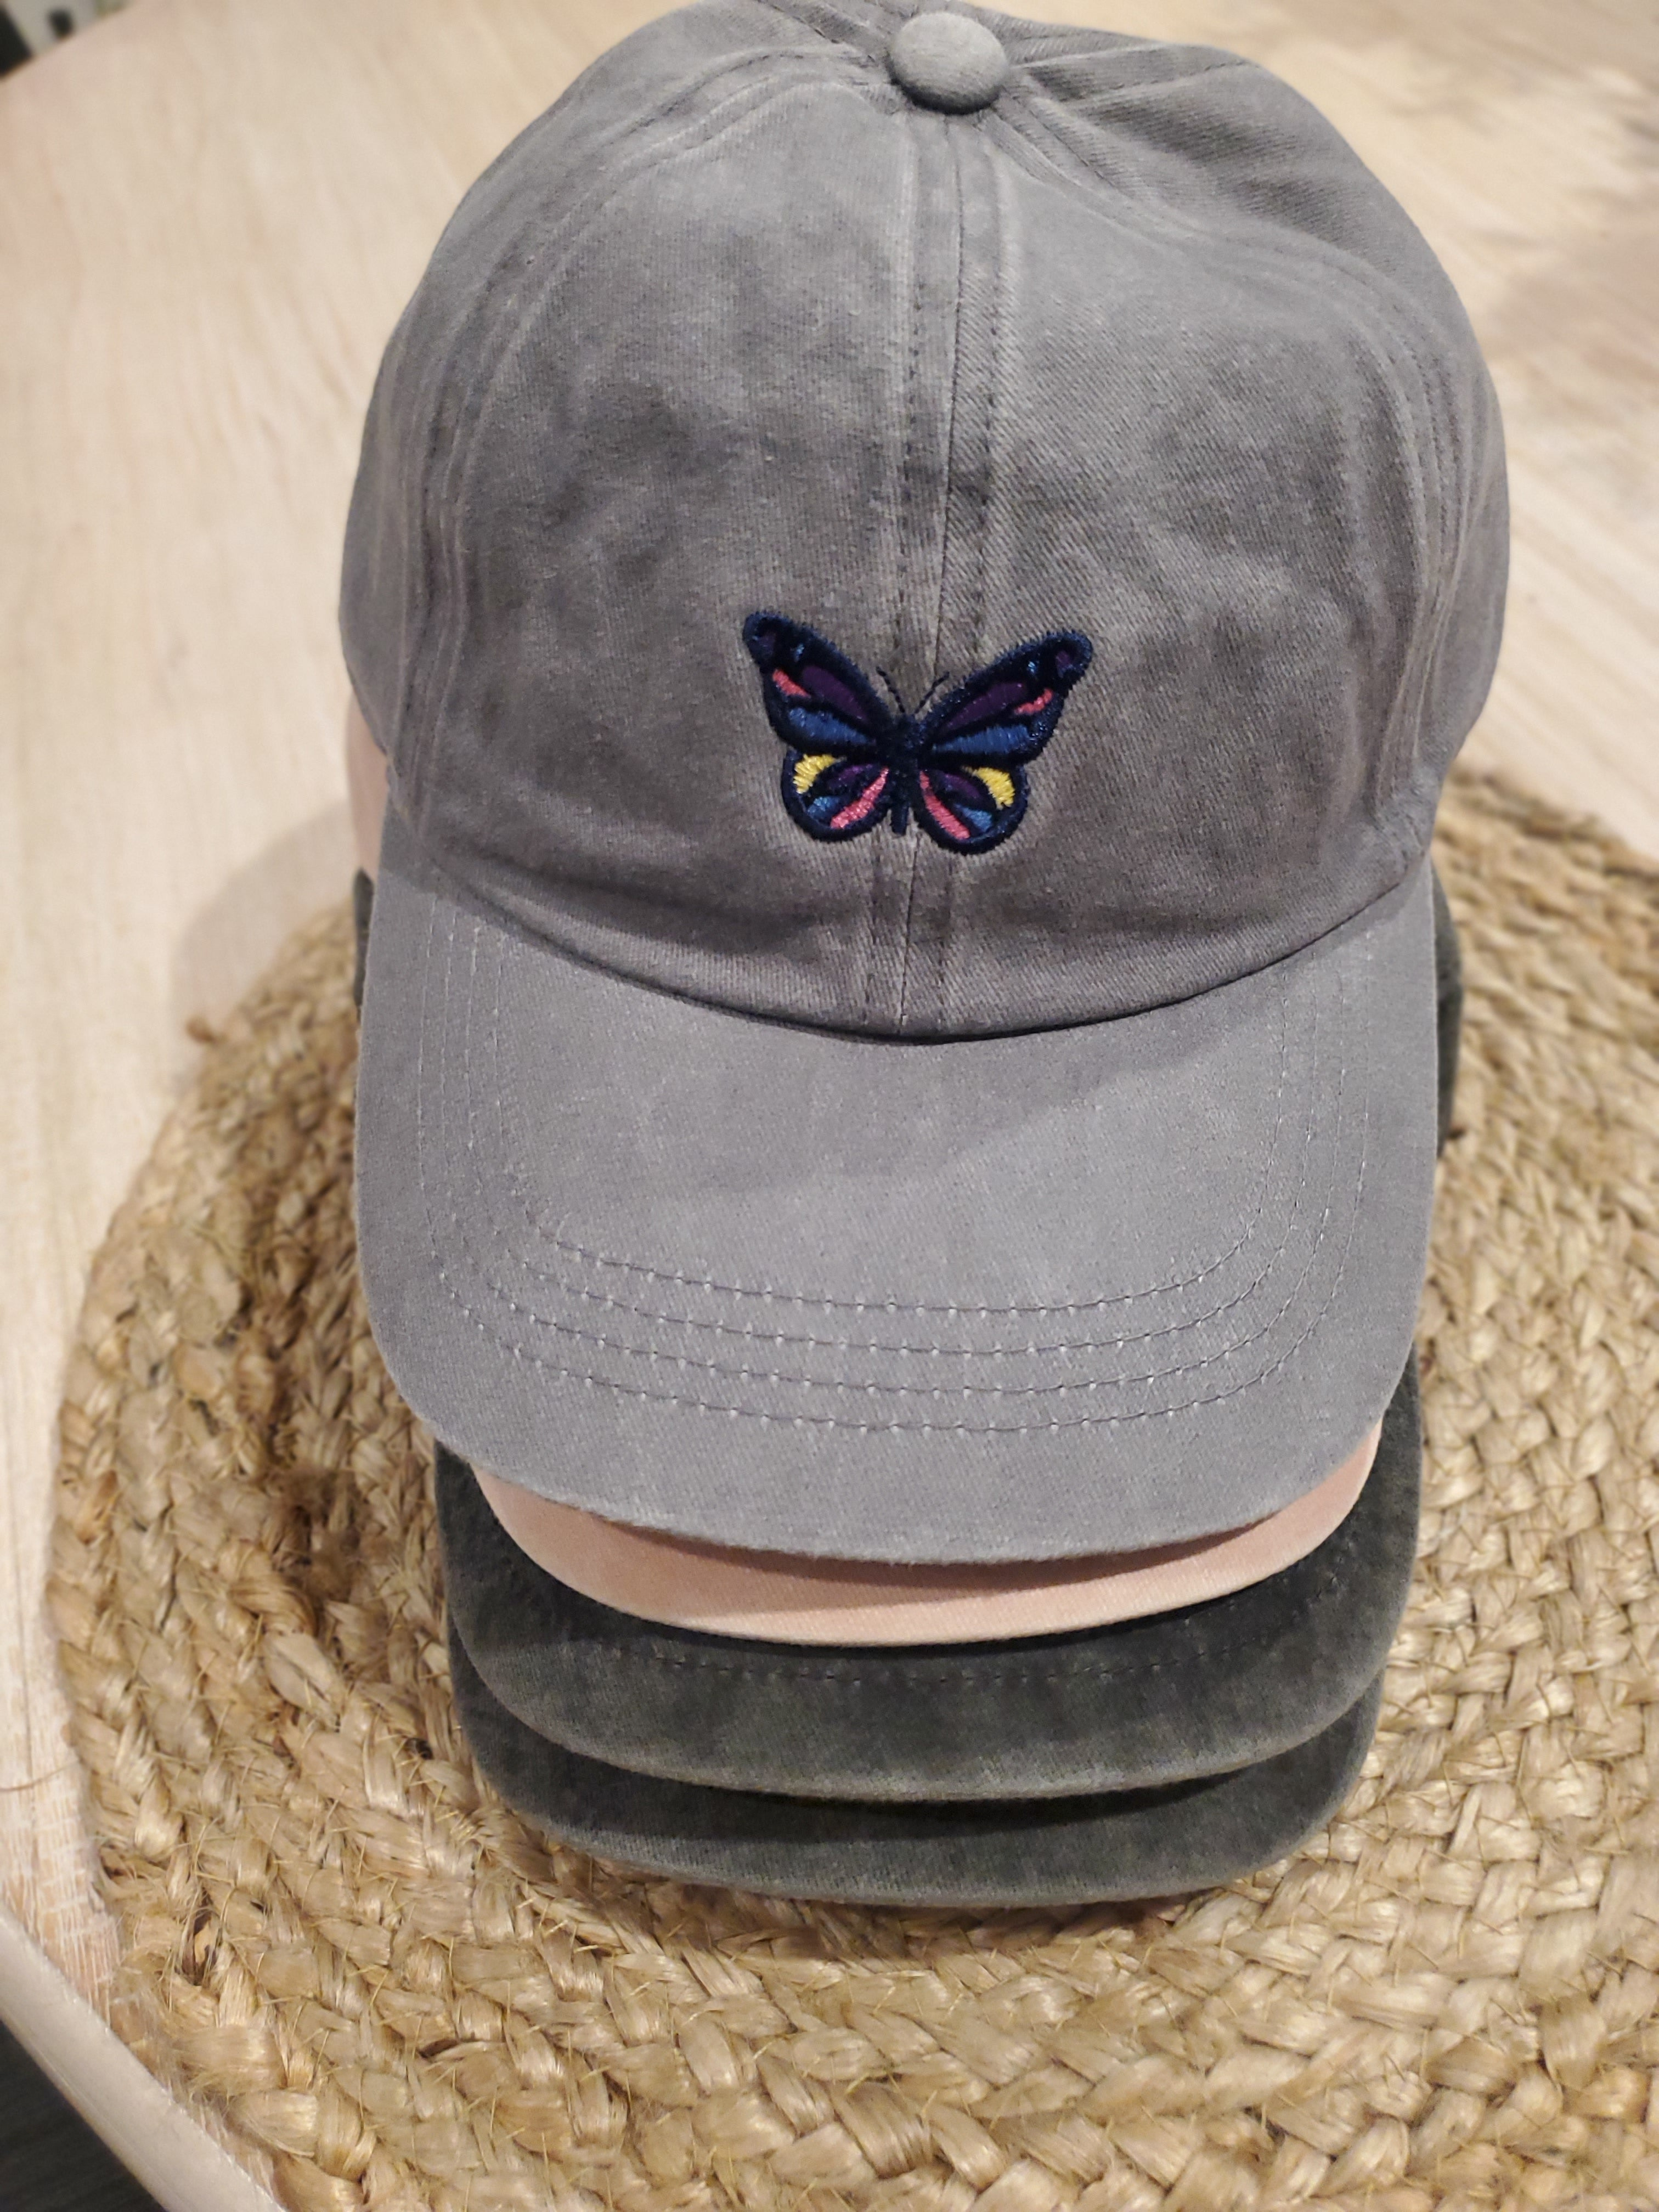 Embroidered Colorful Butterfly Hat